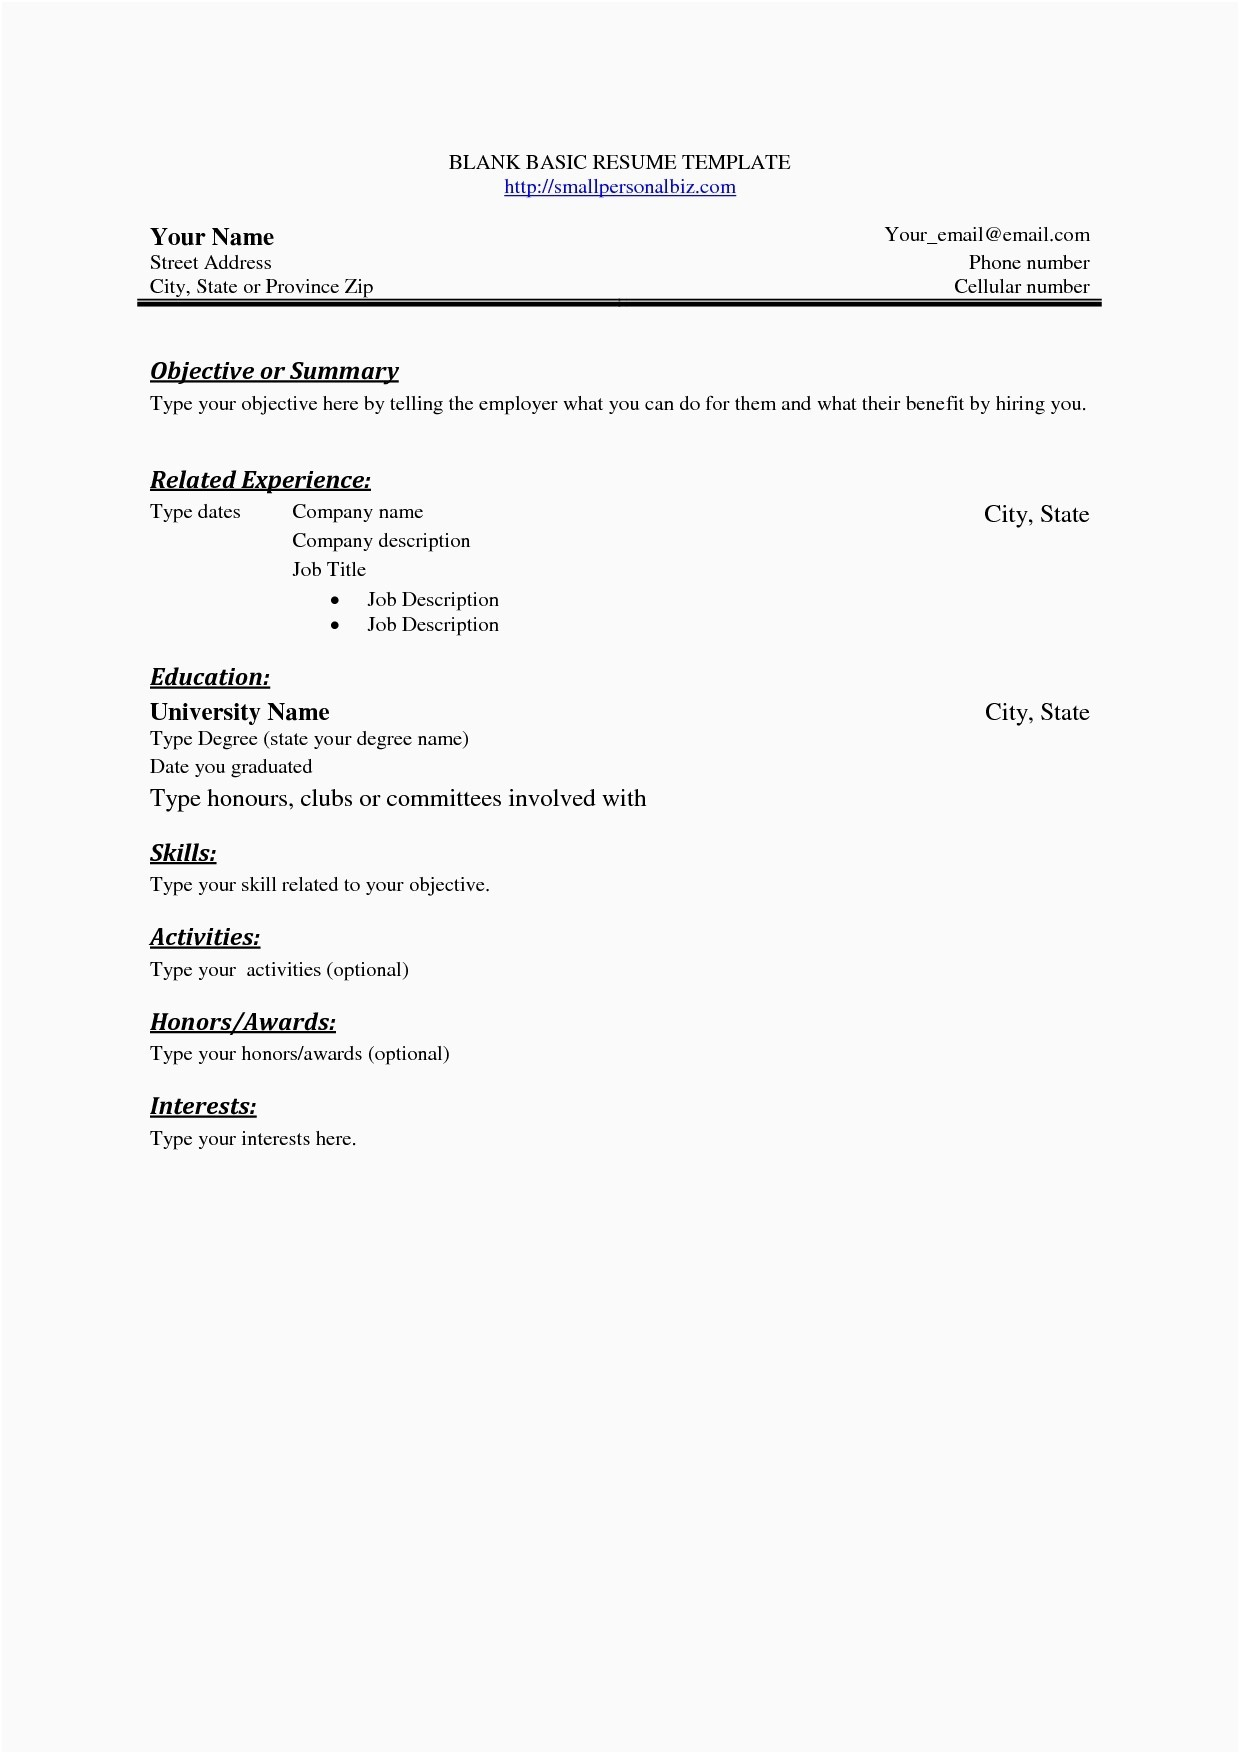 Leed Letter Template - Leed Letter Template